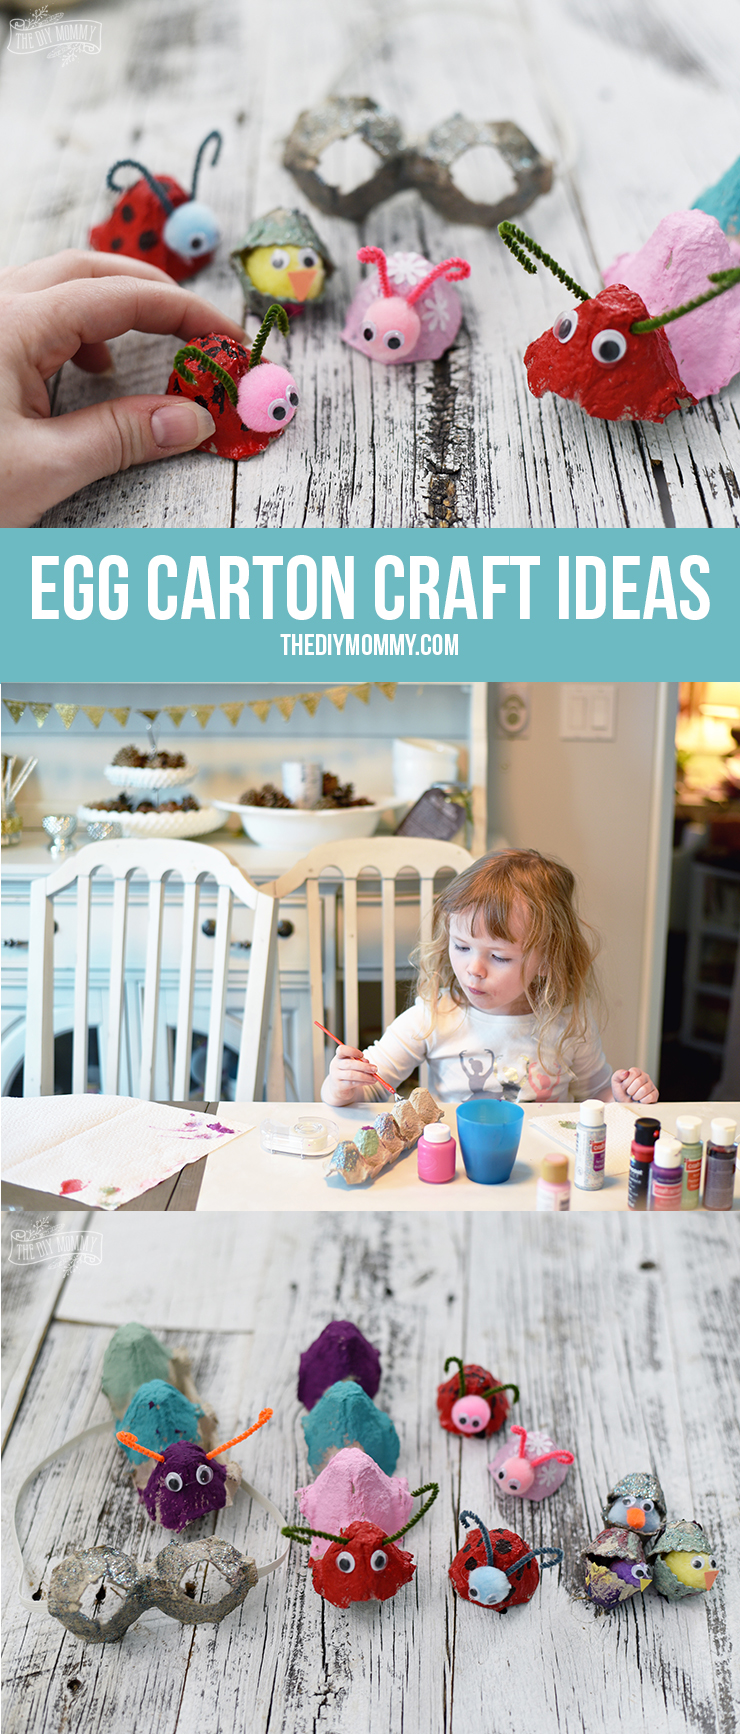 DIY Egg Carton Craft Ideas